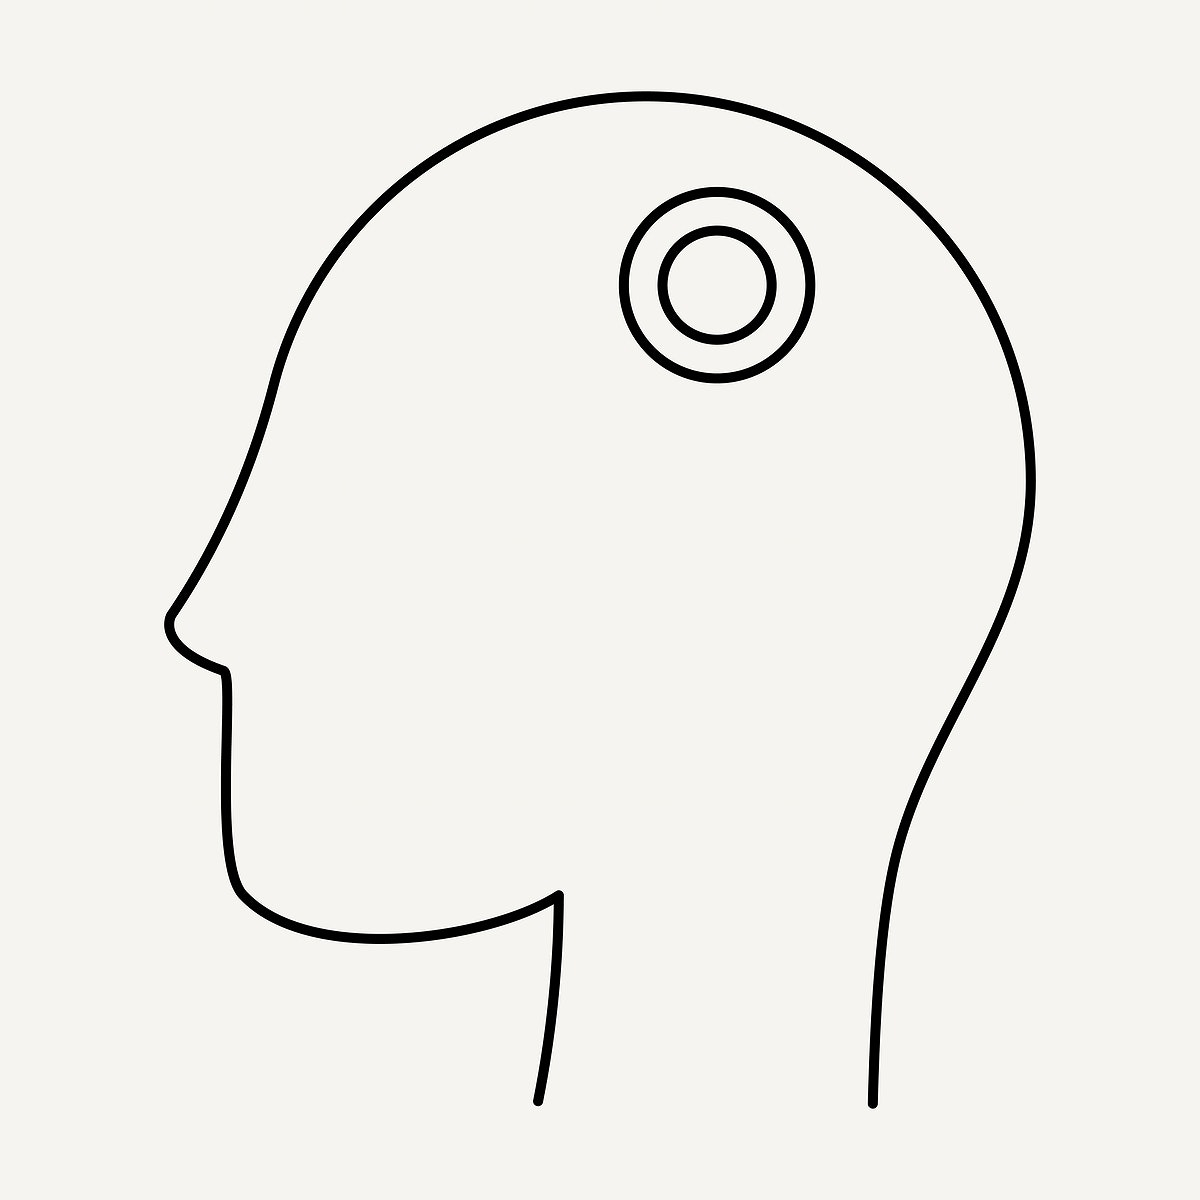 Line drawing character headache from COVID-19 symptoms element vector